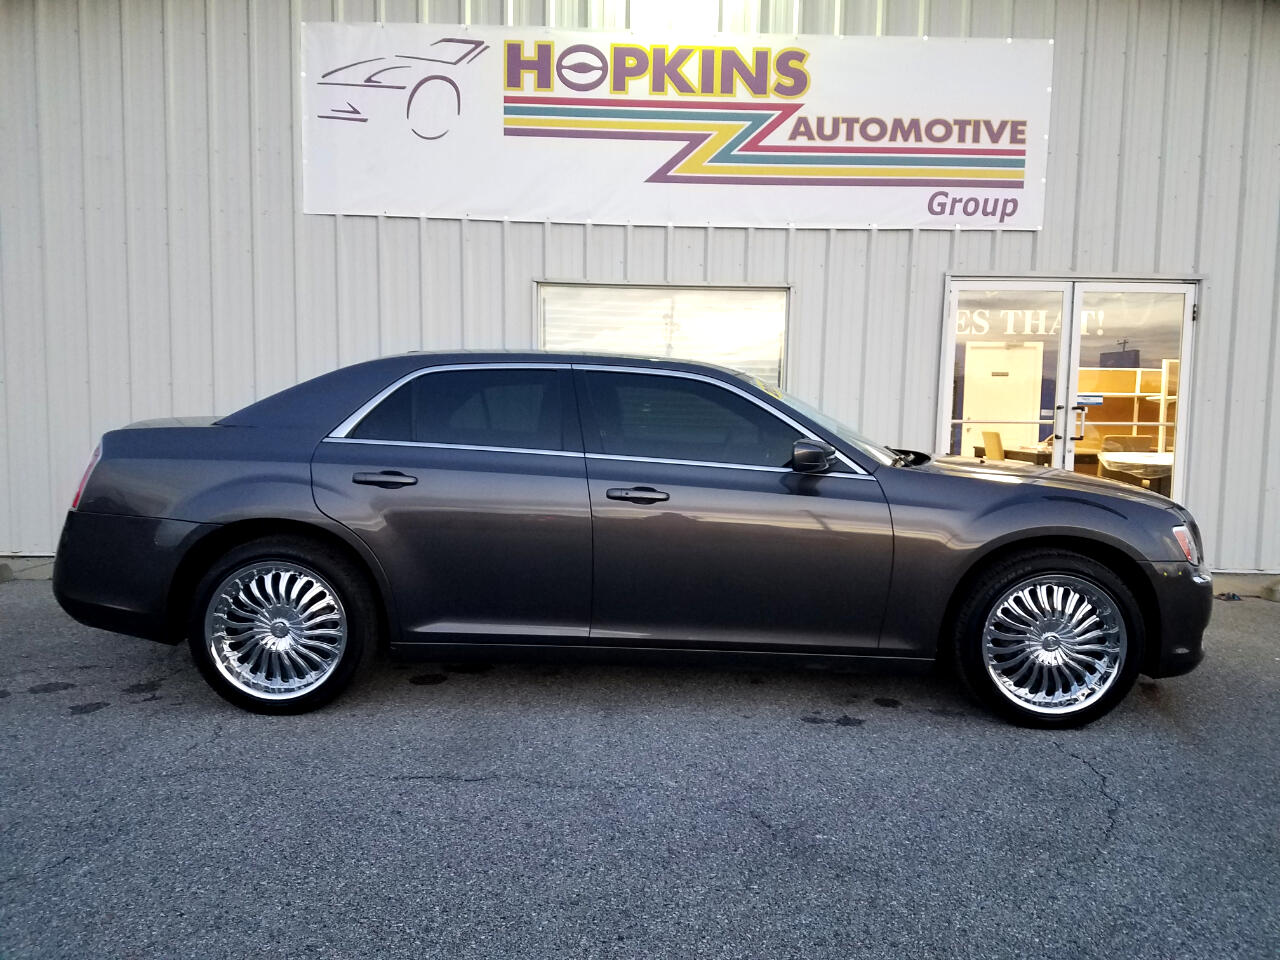 2013 Chrysler 300 4dr Sdn AWD